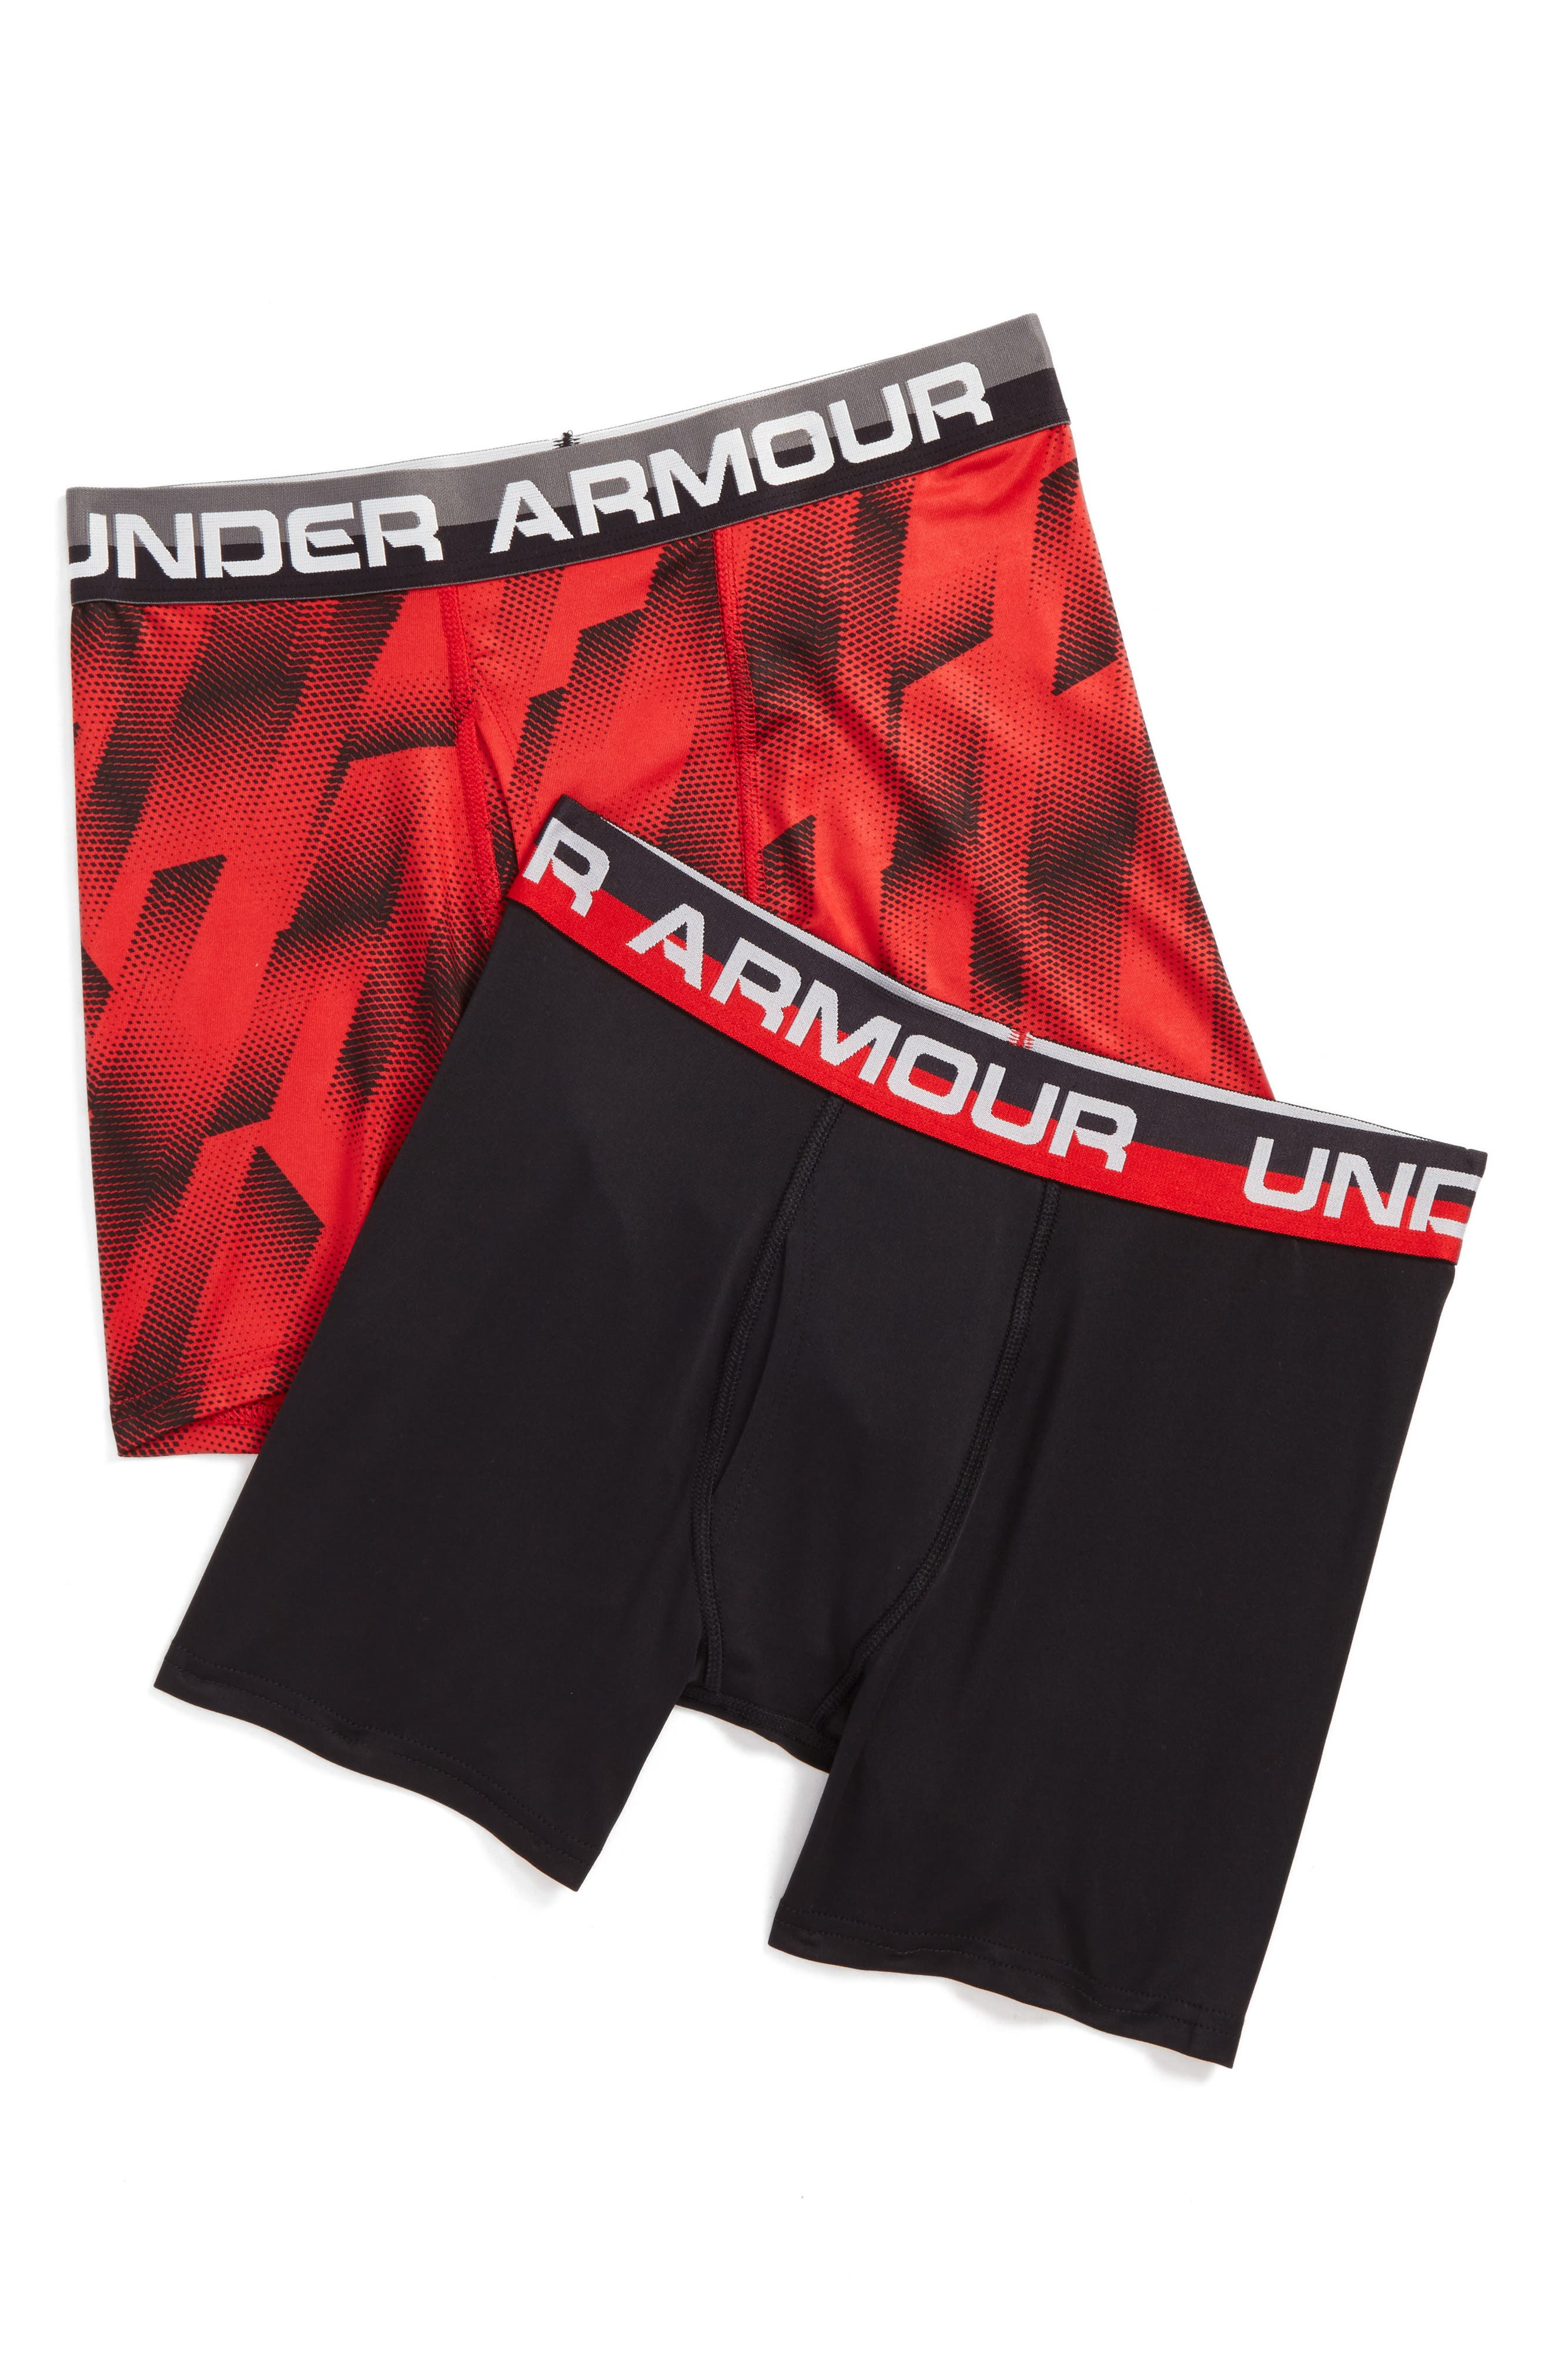 Main Image - Under Armour Sandstorm 2-Pack Boxerjock™ Boxer Briefs (Big Boys)